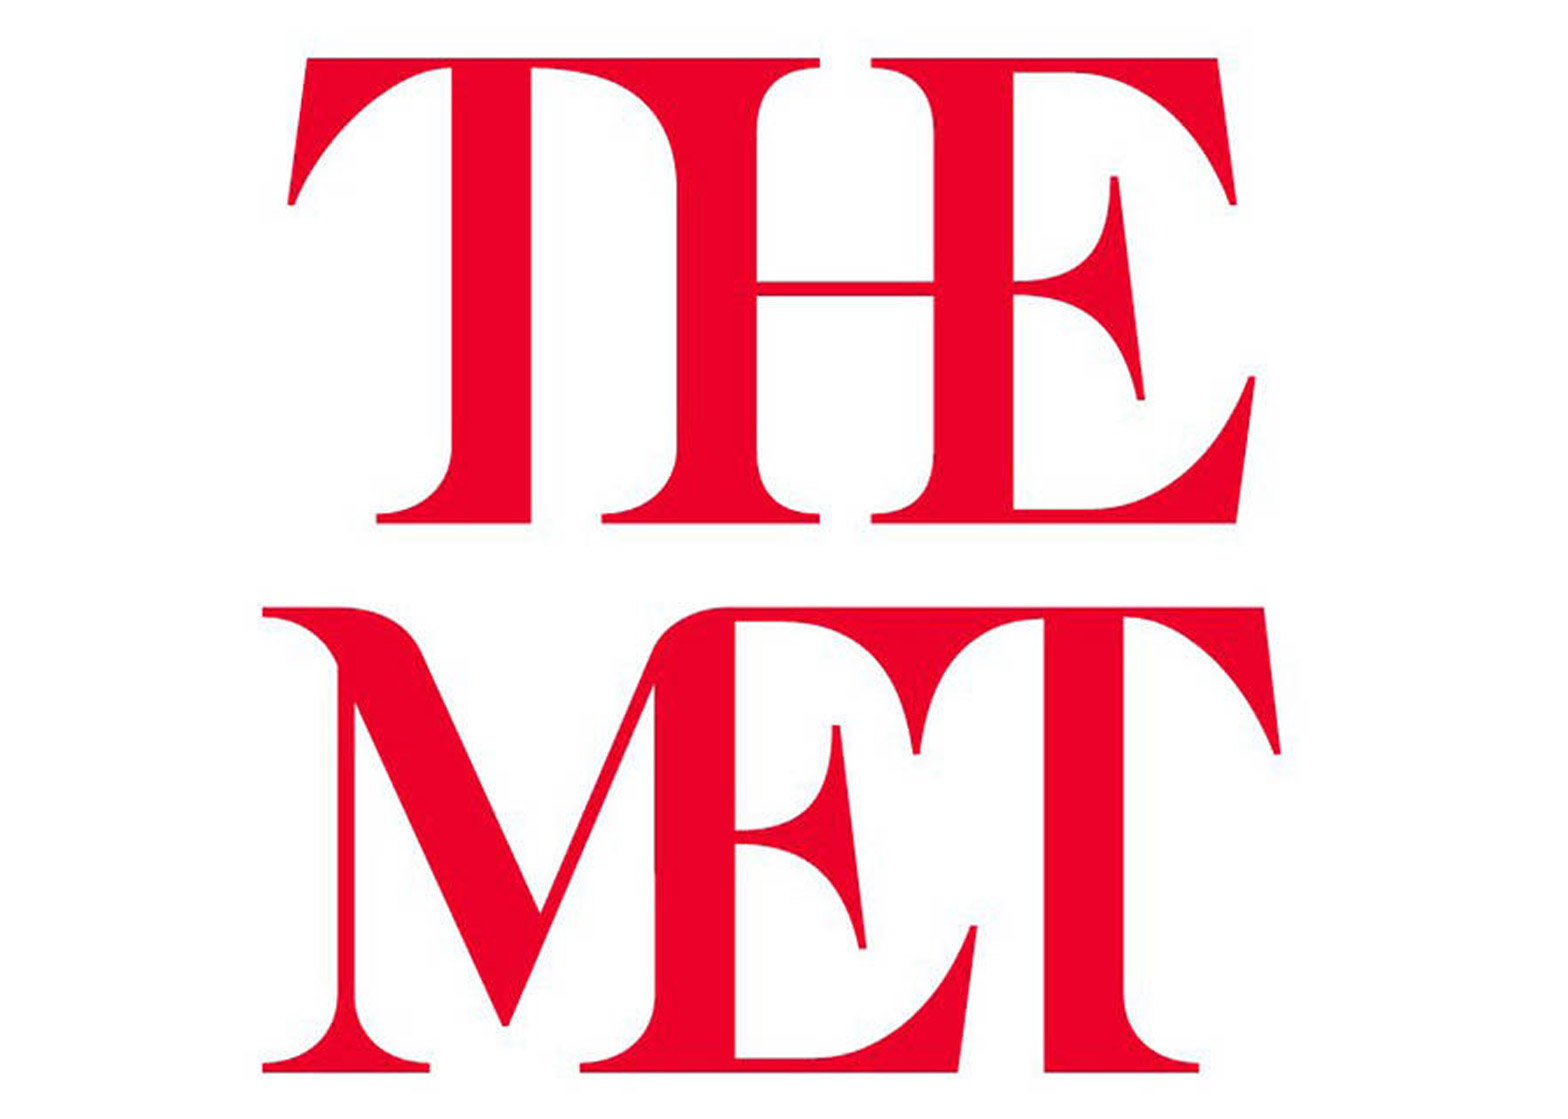 The new logo is a stacked version of the words The Met with conjoined letters in each word. Image courtesy of The Metropolitan Museum of Art